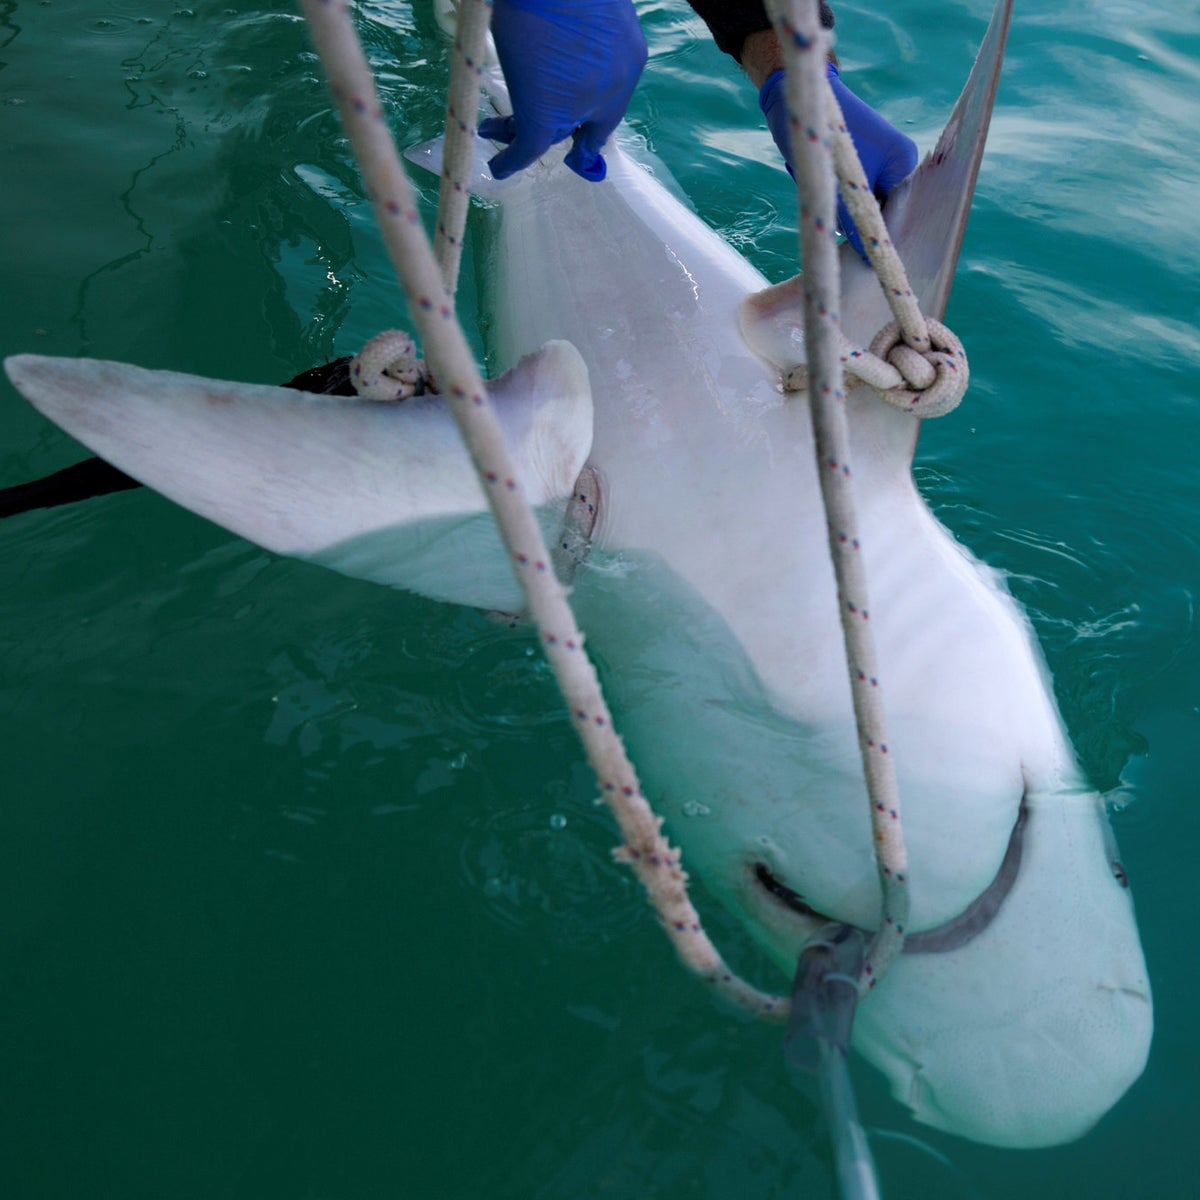 A sandbar shark is examined by researchers from the predator project of the Morris Kahn Marine Research Station, established by the University of Haifa, in the Mediterranean Sea off the coast of the northern Israeli city of Hadera.